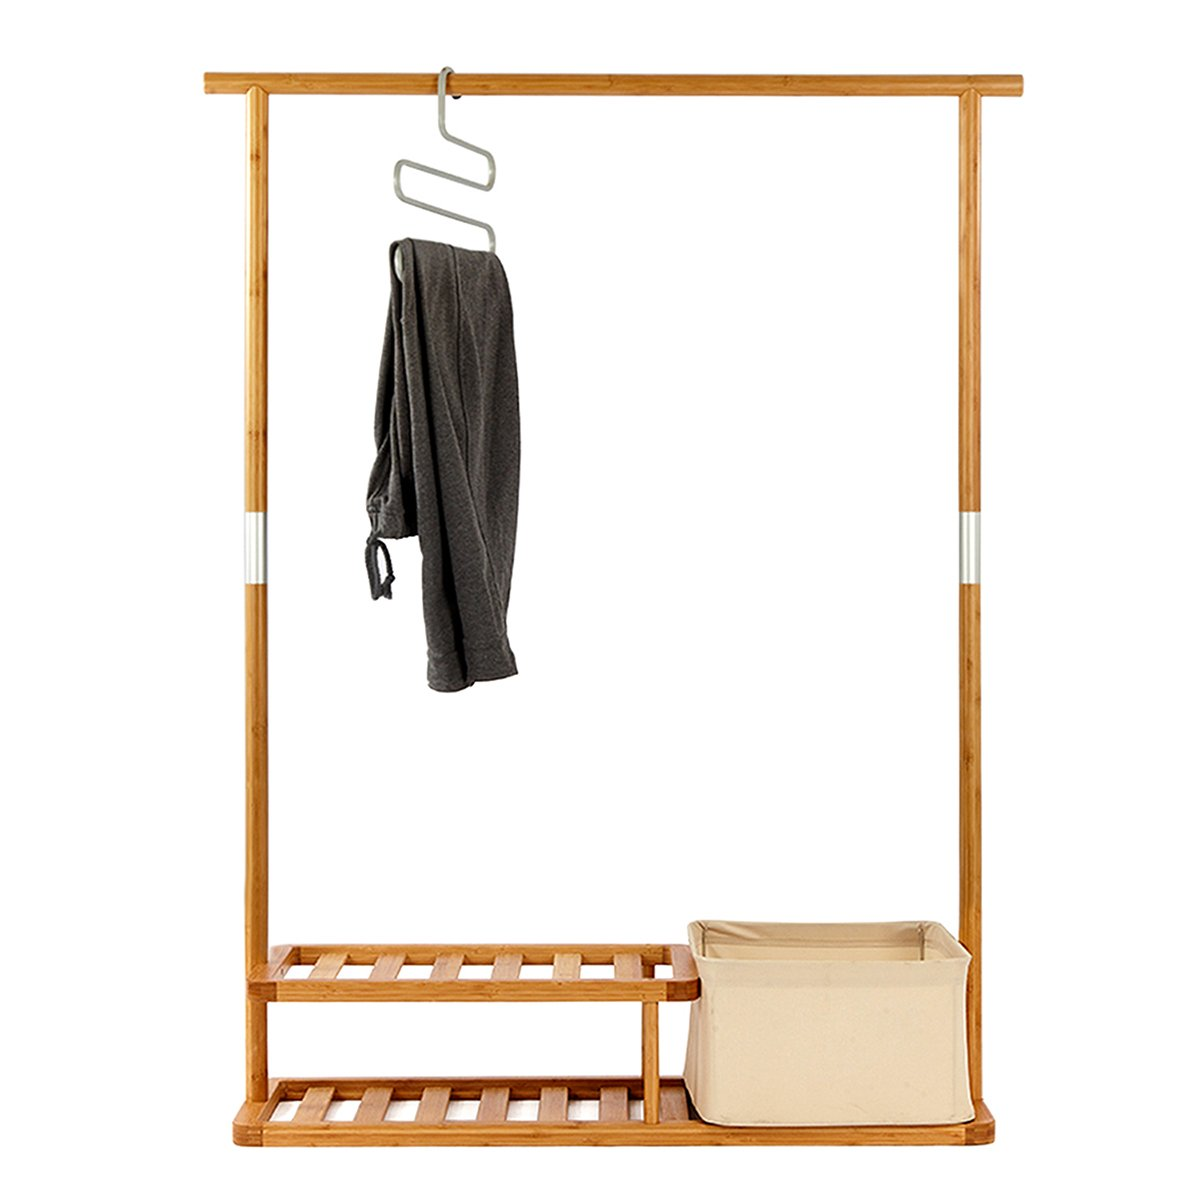 amazoncom segarty bamboo clothing garment rack heavy duty coat u0026 shoe clothes rack clothes hanger stand with 2 tier shoe shelves